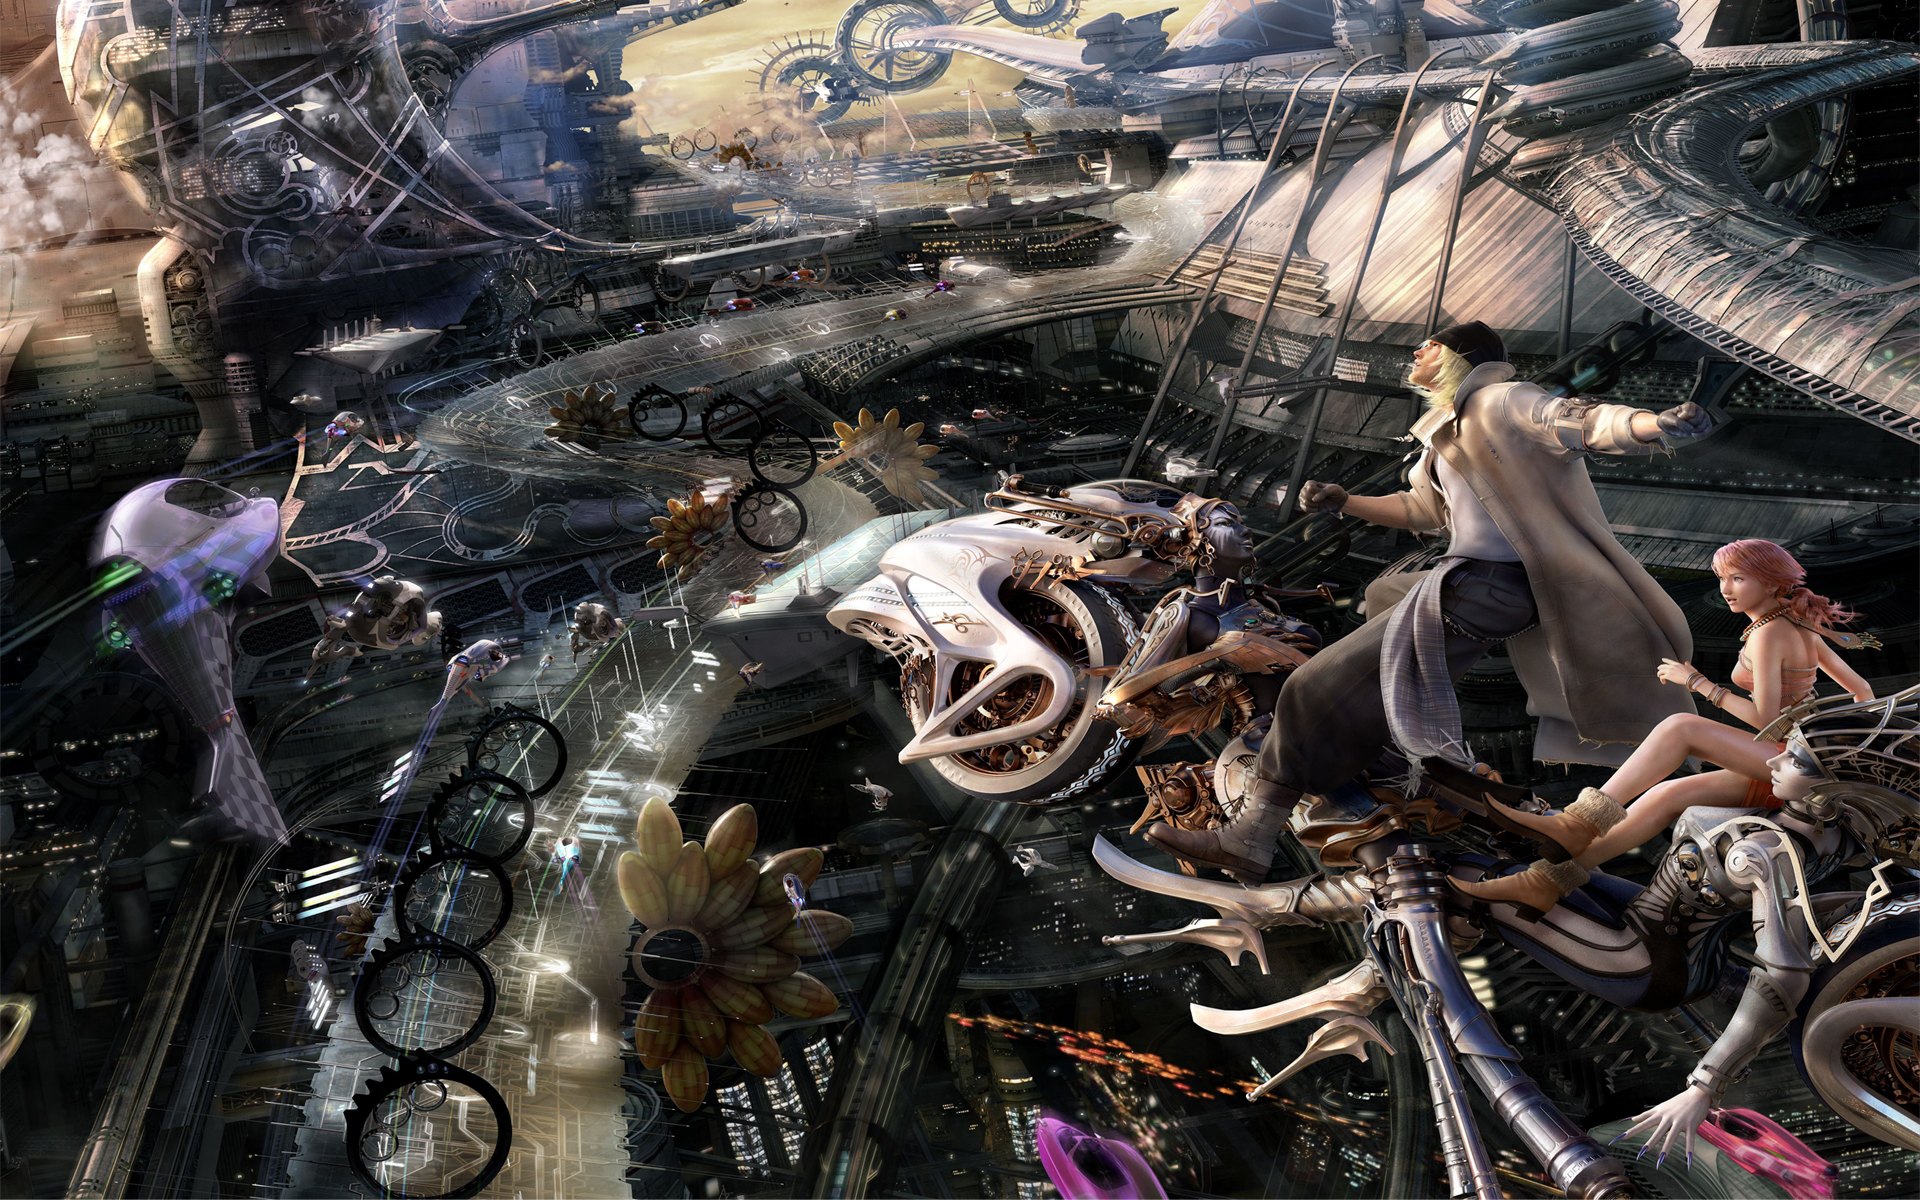 Free Download Final Fantasy 13 Wallpaper Full Hd 1080p Widescreen